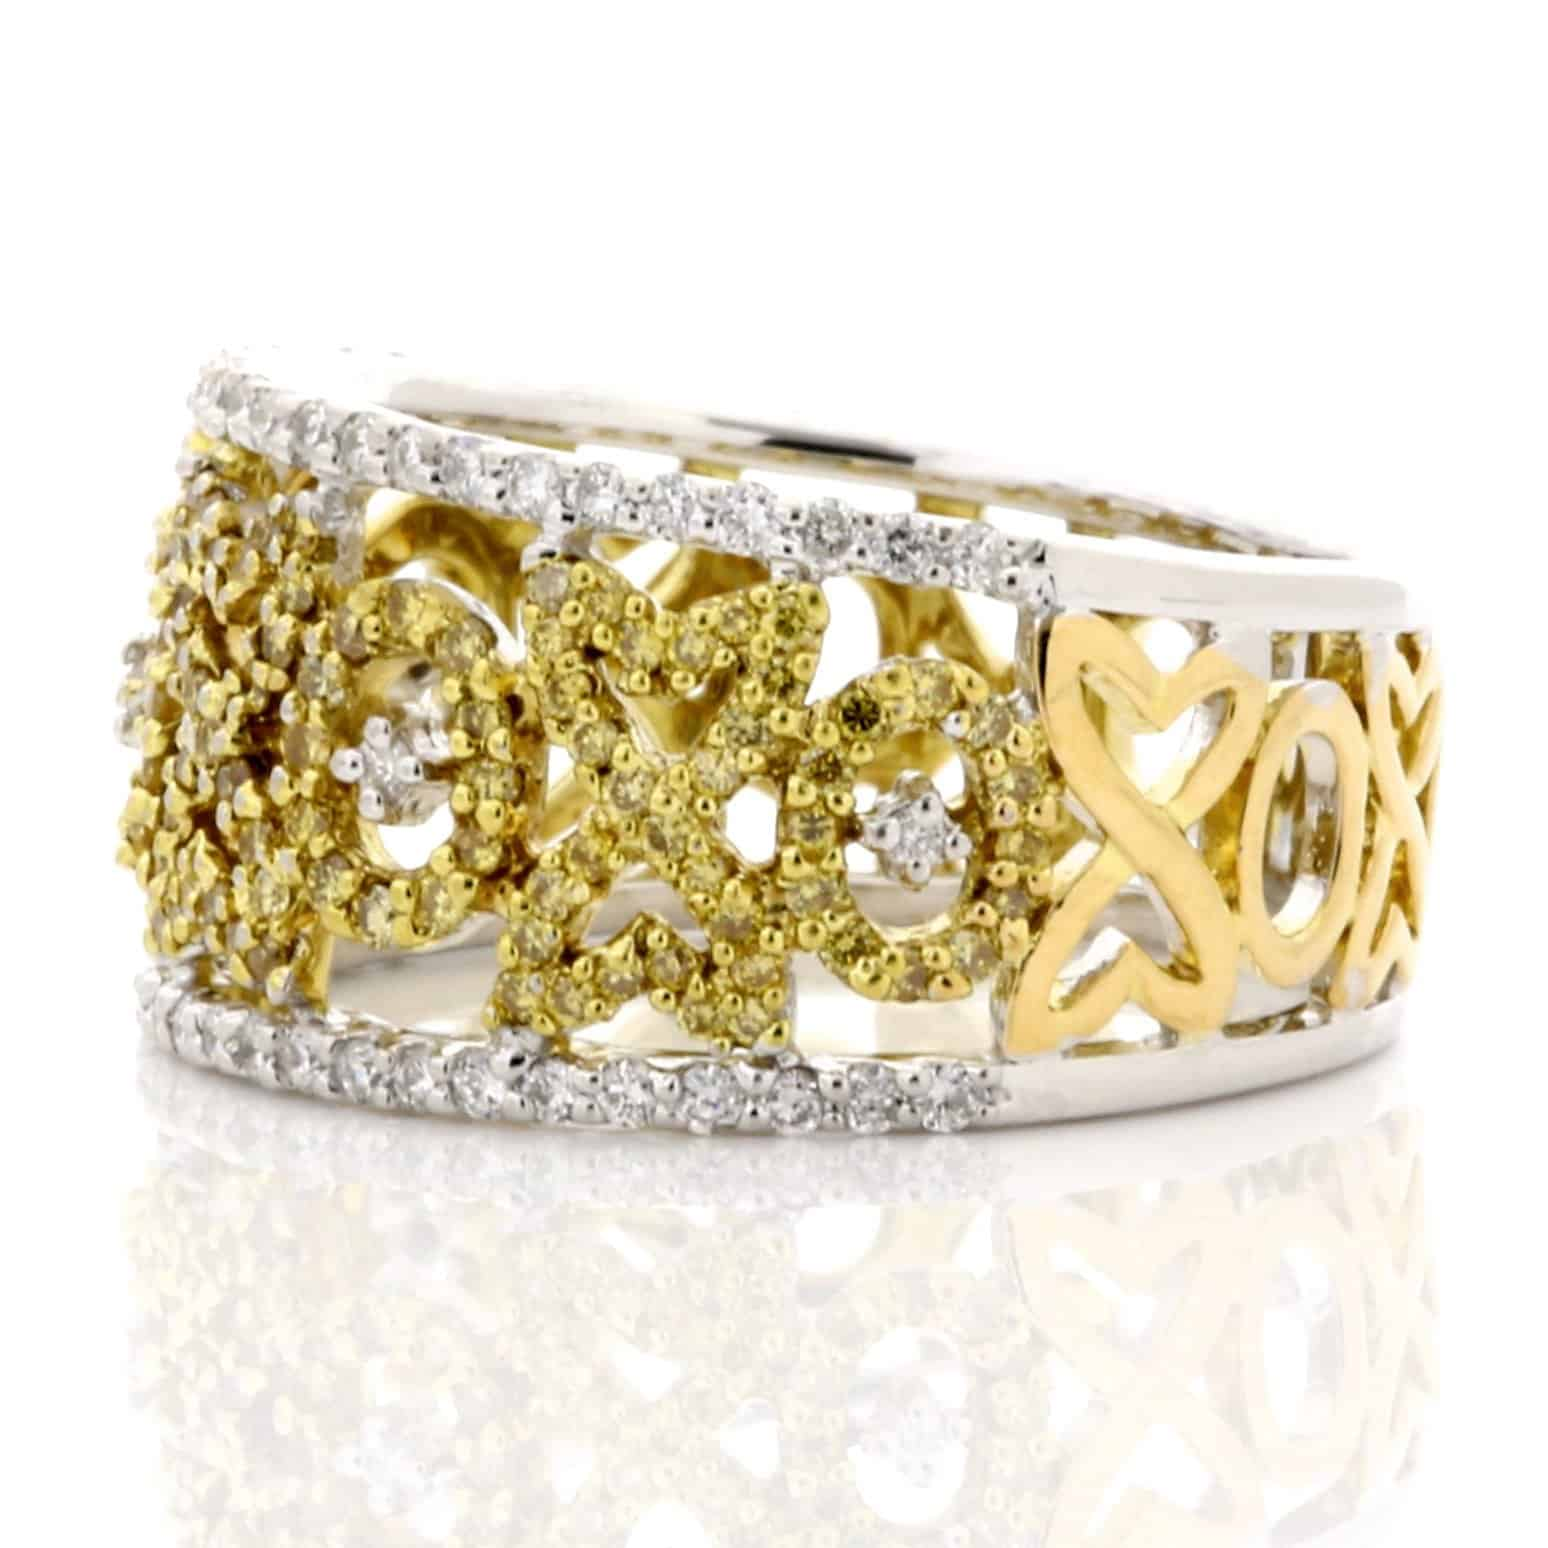 YELLOW & WHITE DIAMOND WIDE BAND RING